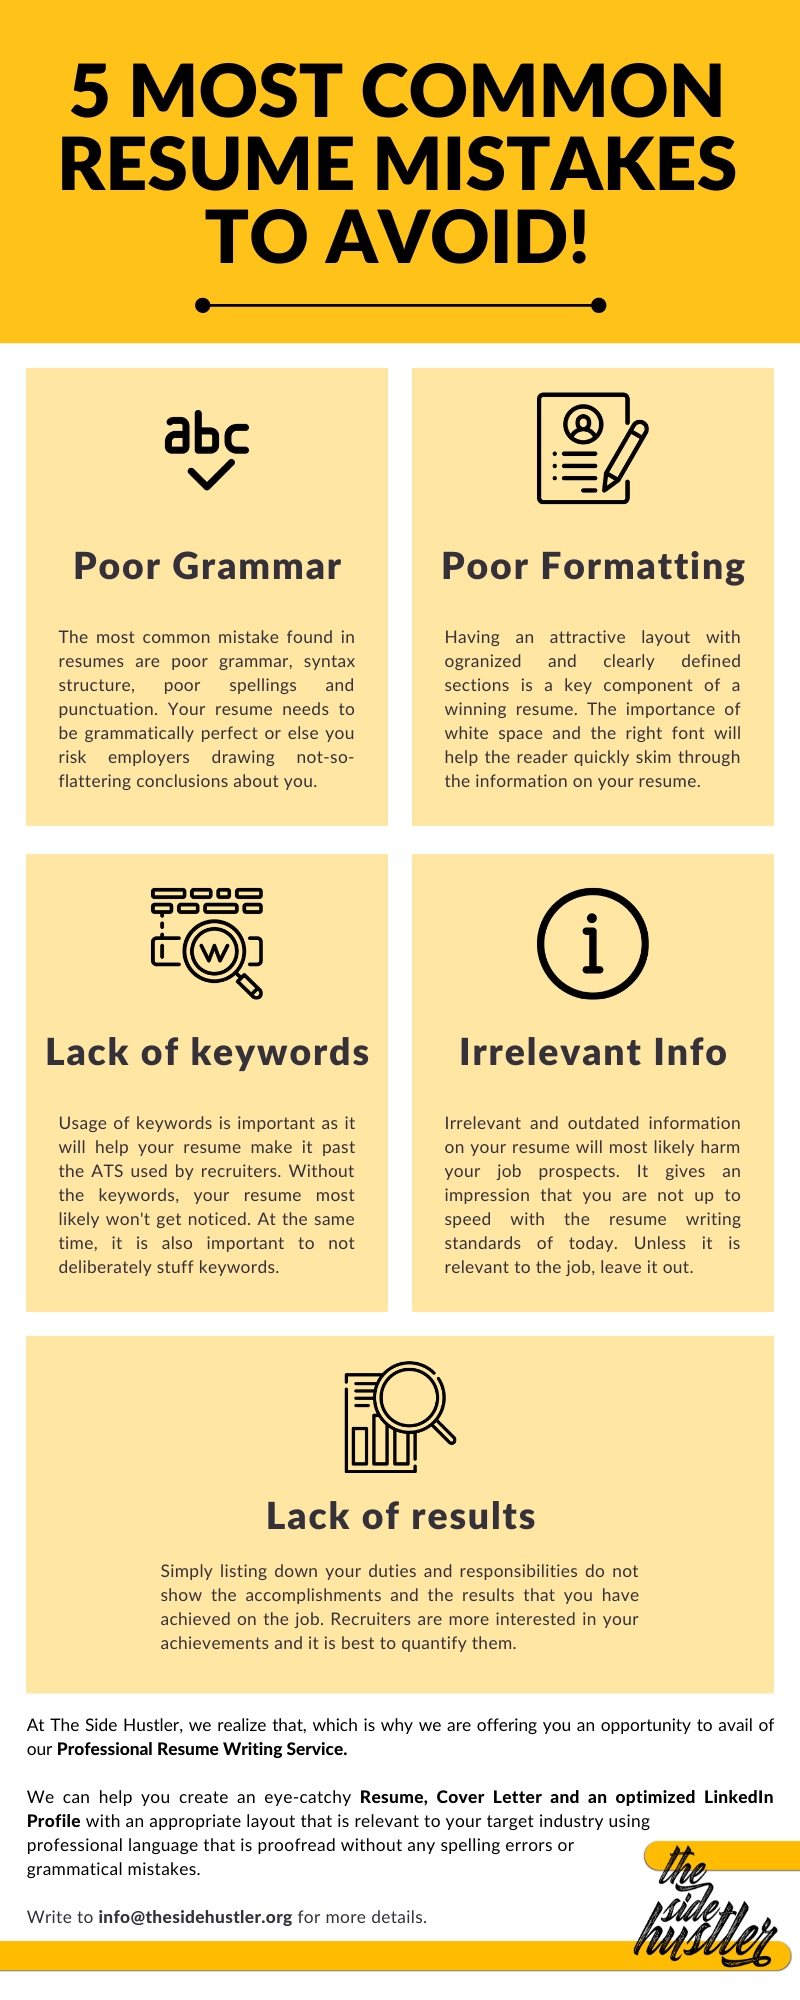 Your resume holds the key towards a great first impression